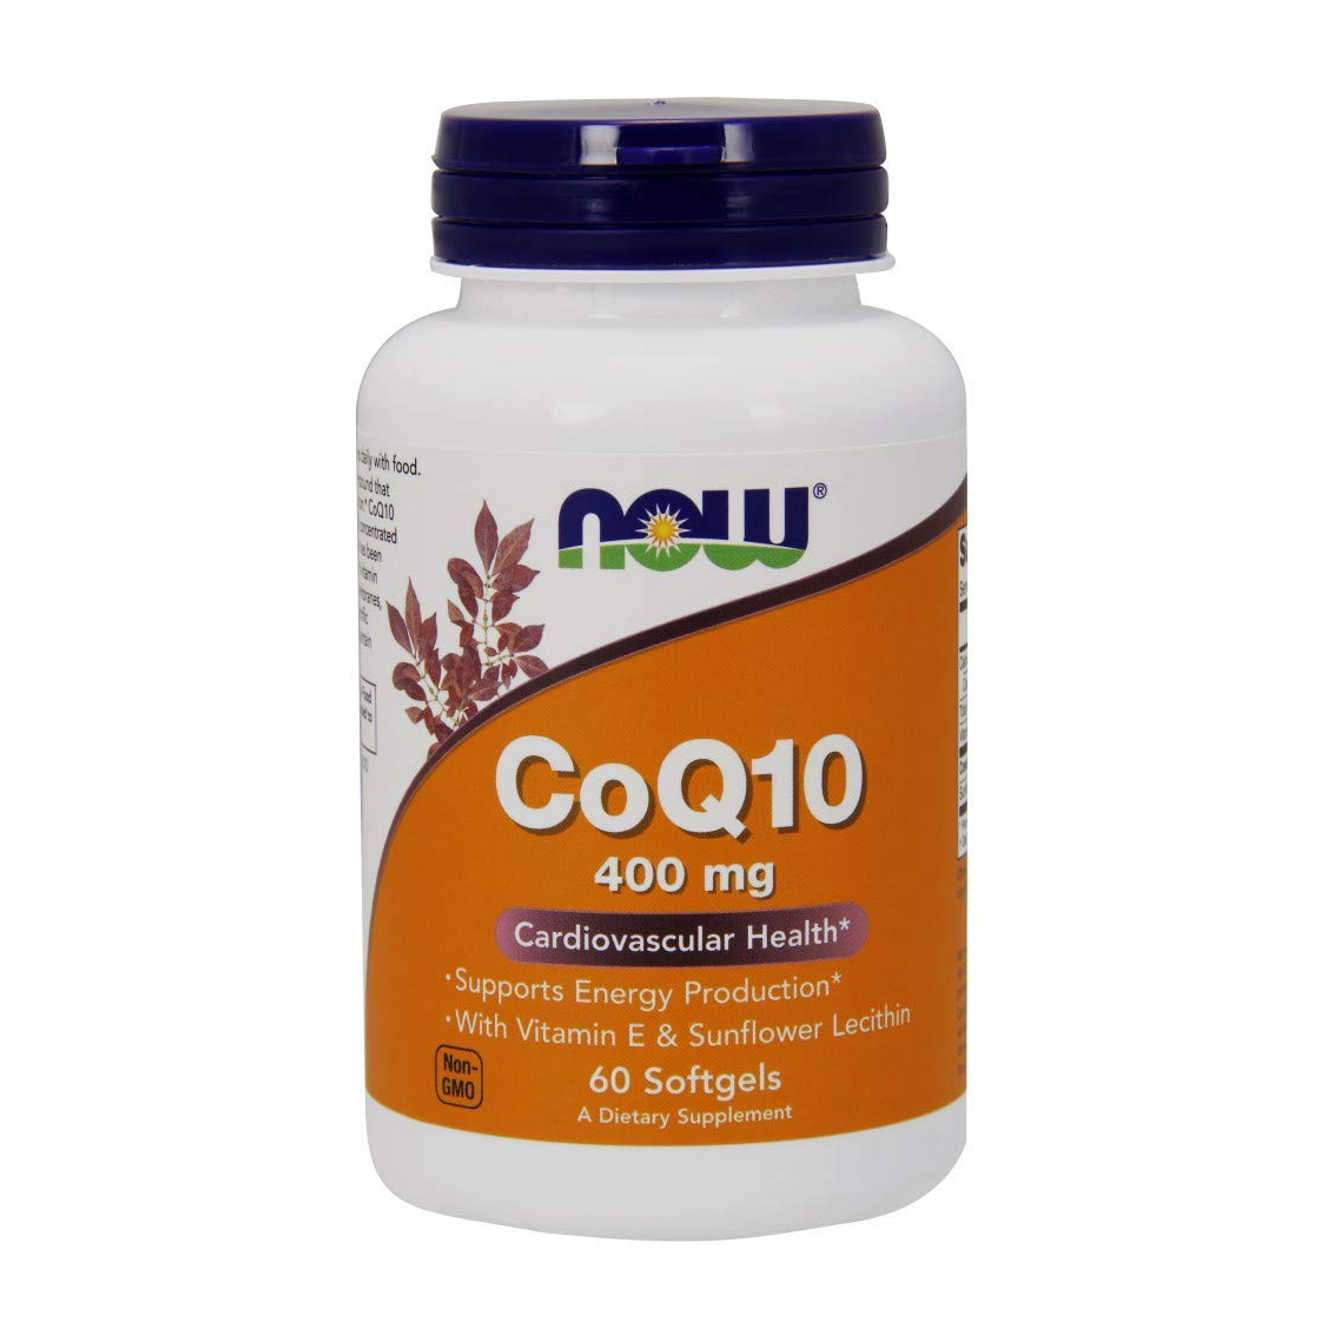 CO-Q10 400mg - 60 softgels